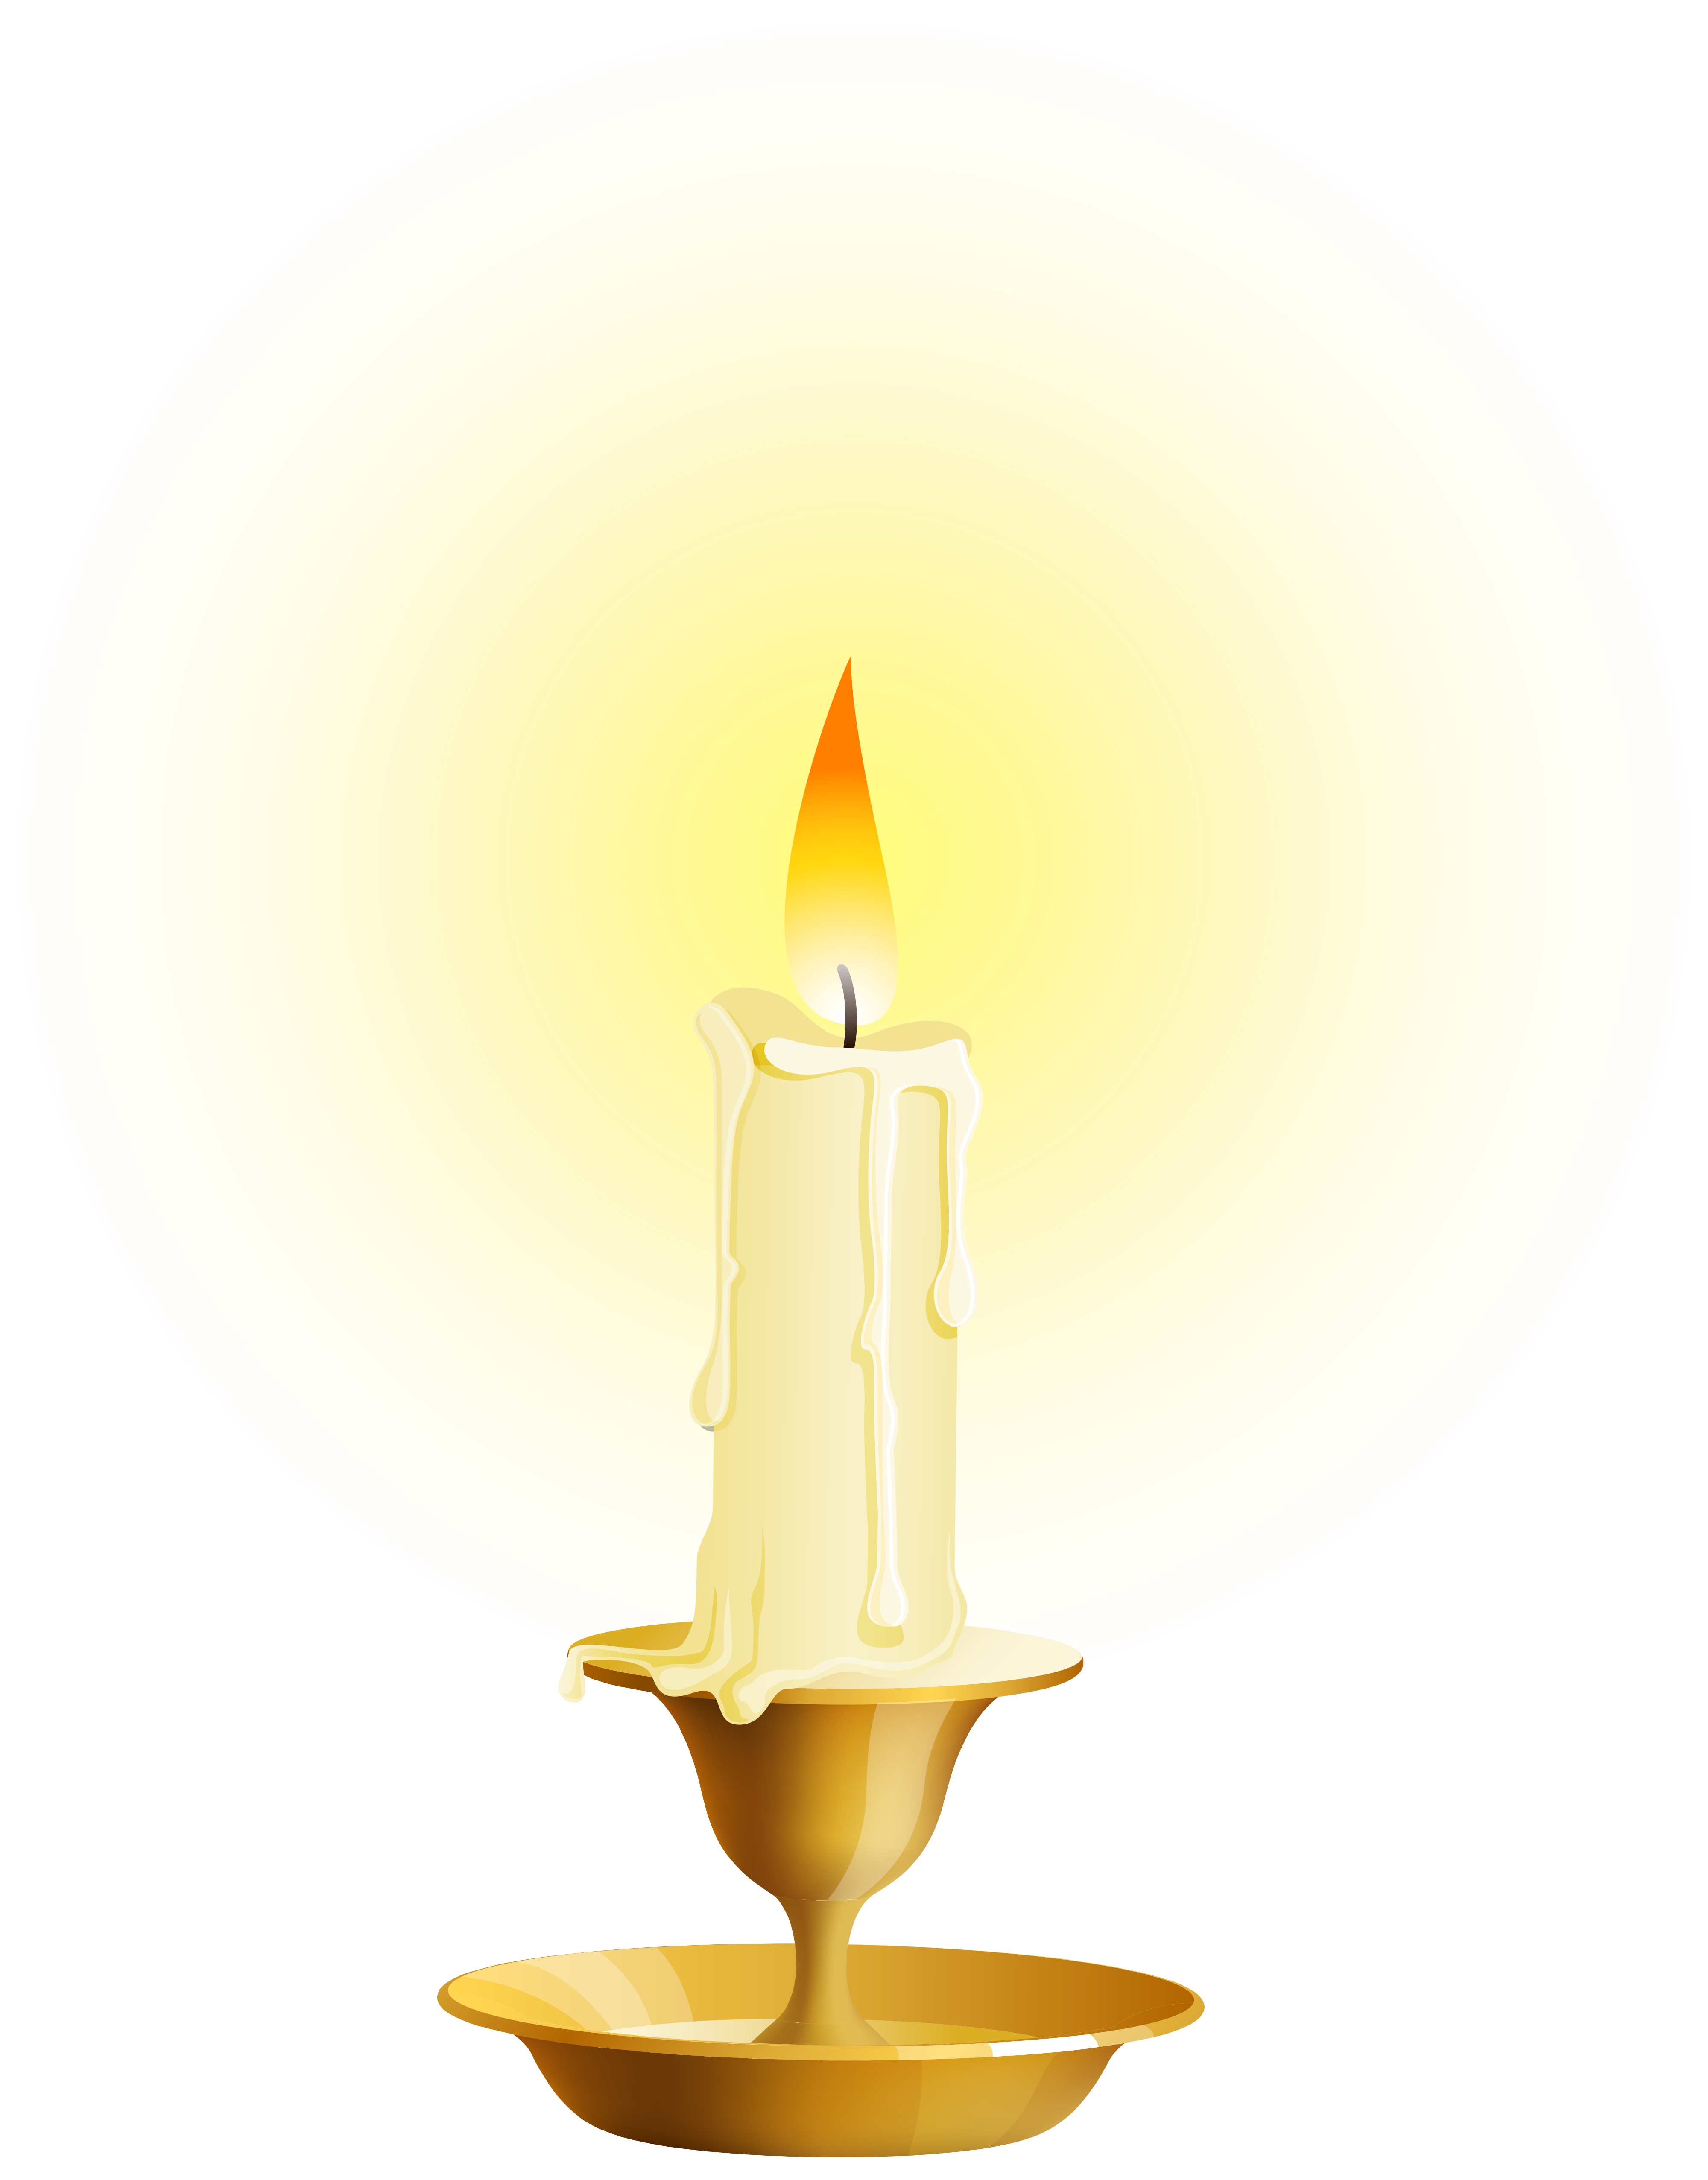 White candle bags clipart with transparent background clip art freeuse stock White Candle PNG Clip Art - Best WEB Clipart clip art freeuse stock